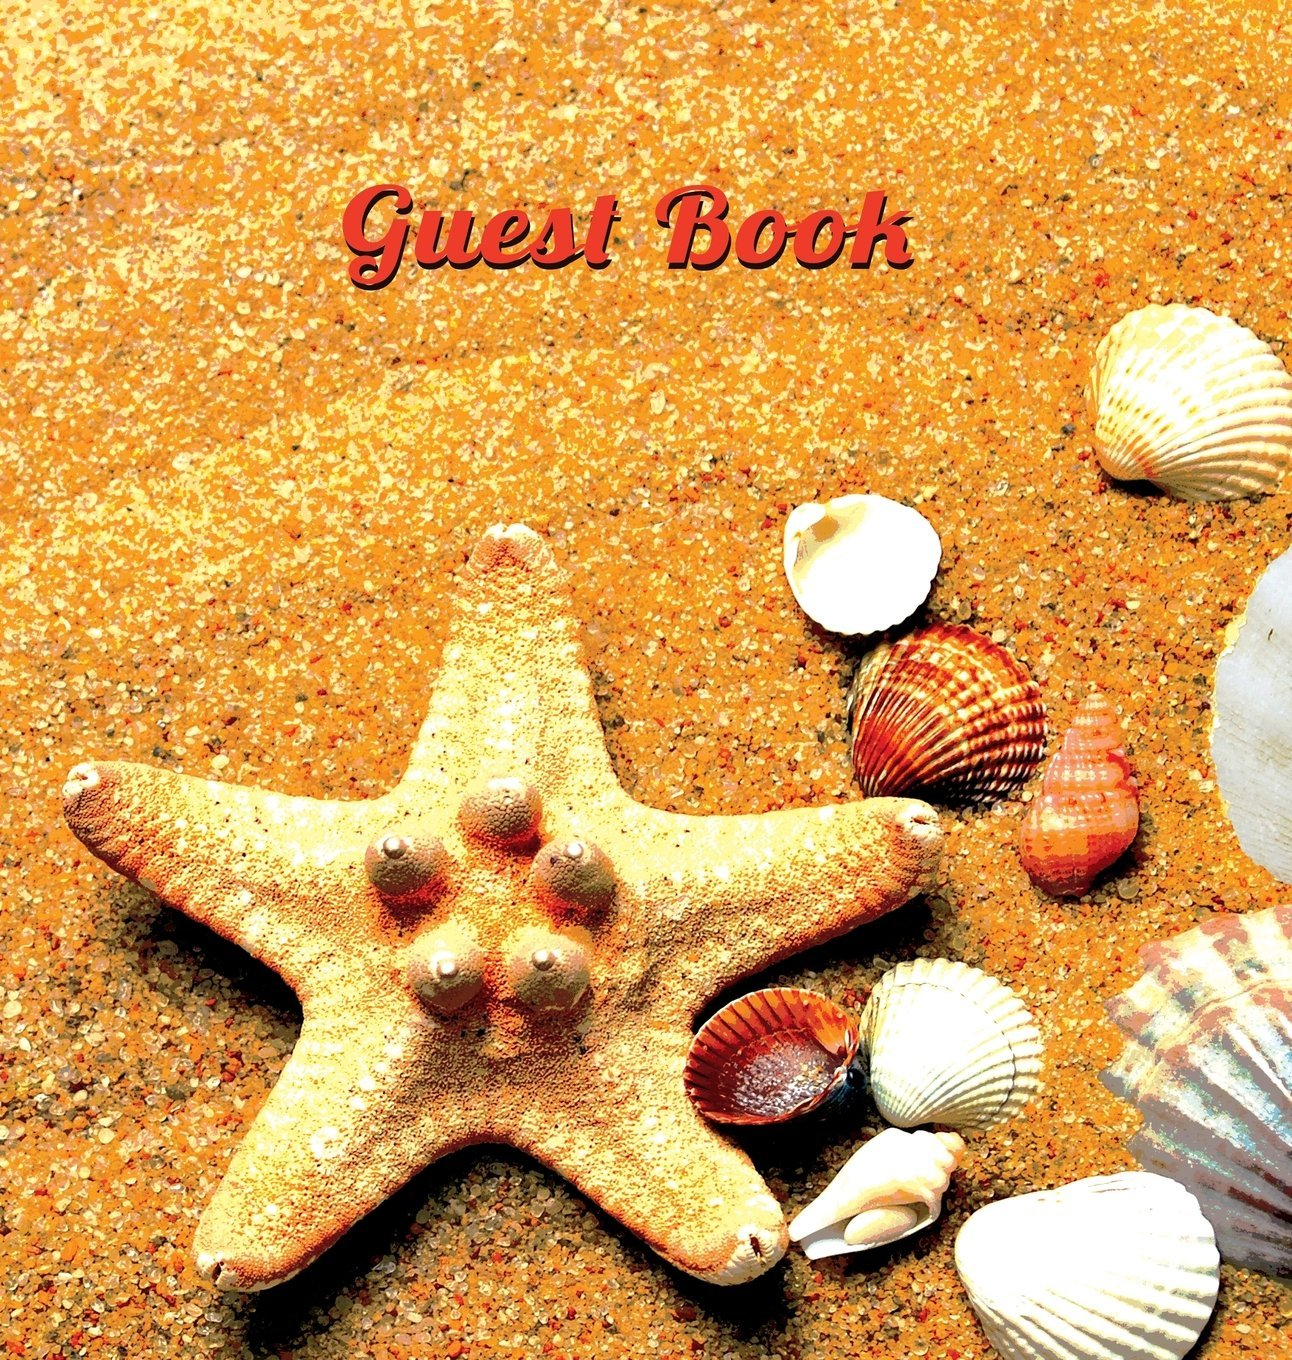 Guest Book for Vacation Home (Hardcover), Visitors Book, Guest Book for Visitors, Beach House Guest Book, Visitor Comments Book.: Suitable for Beach ... Parties, Events & Functions by the Sea.